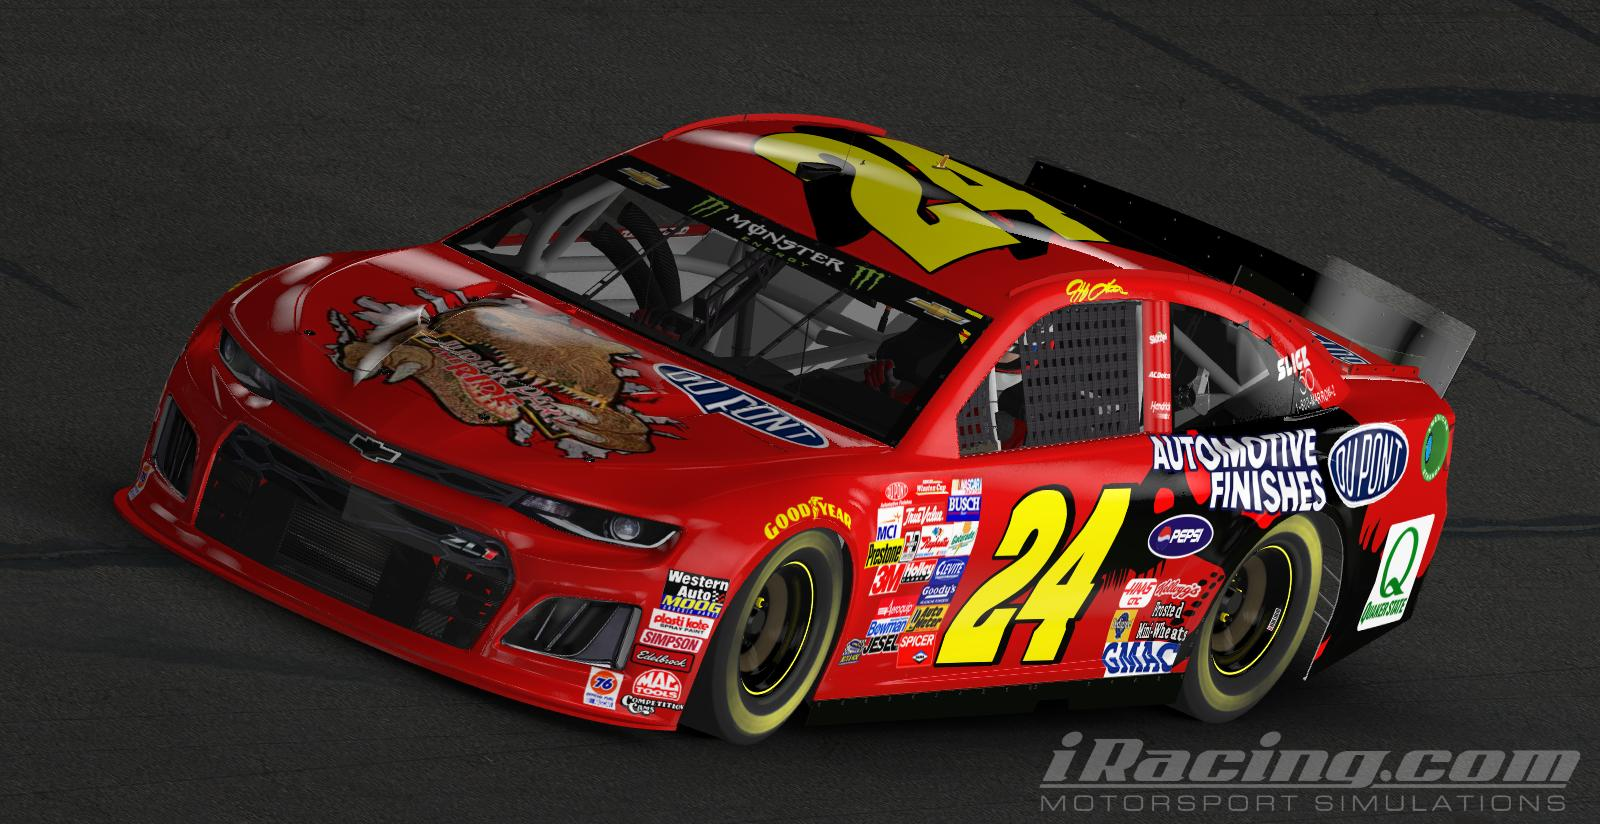 Jeff Gordon Replica Iracing 2019